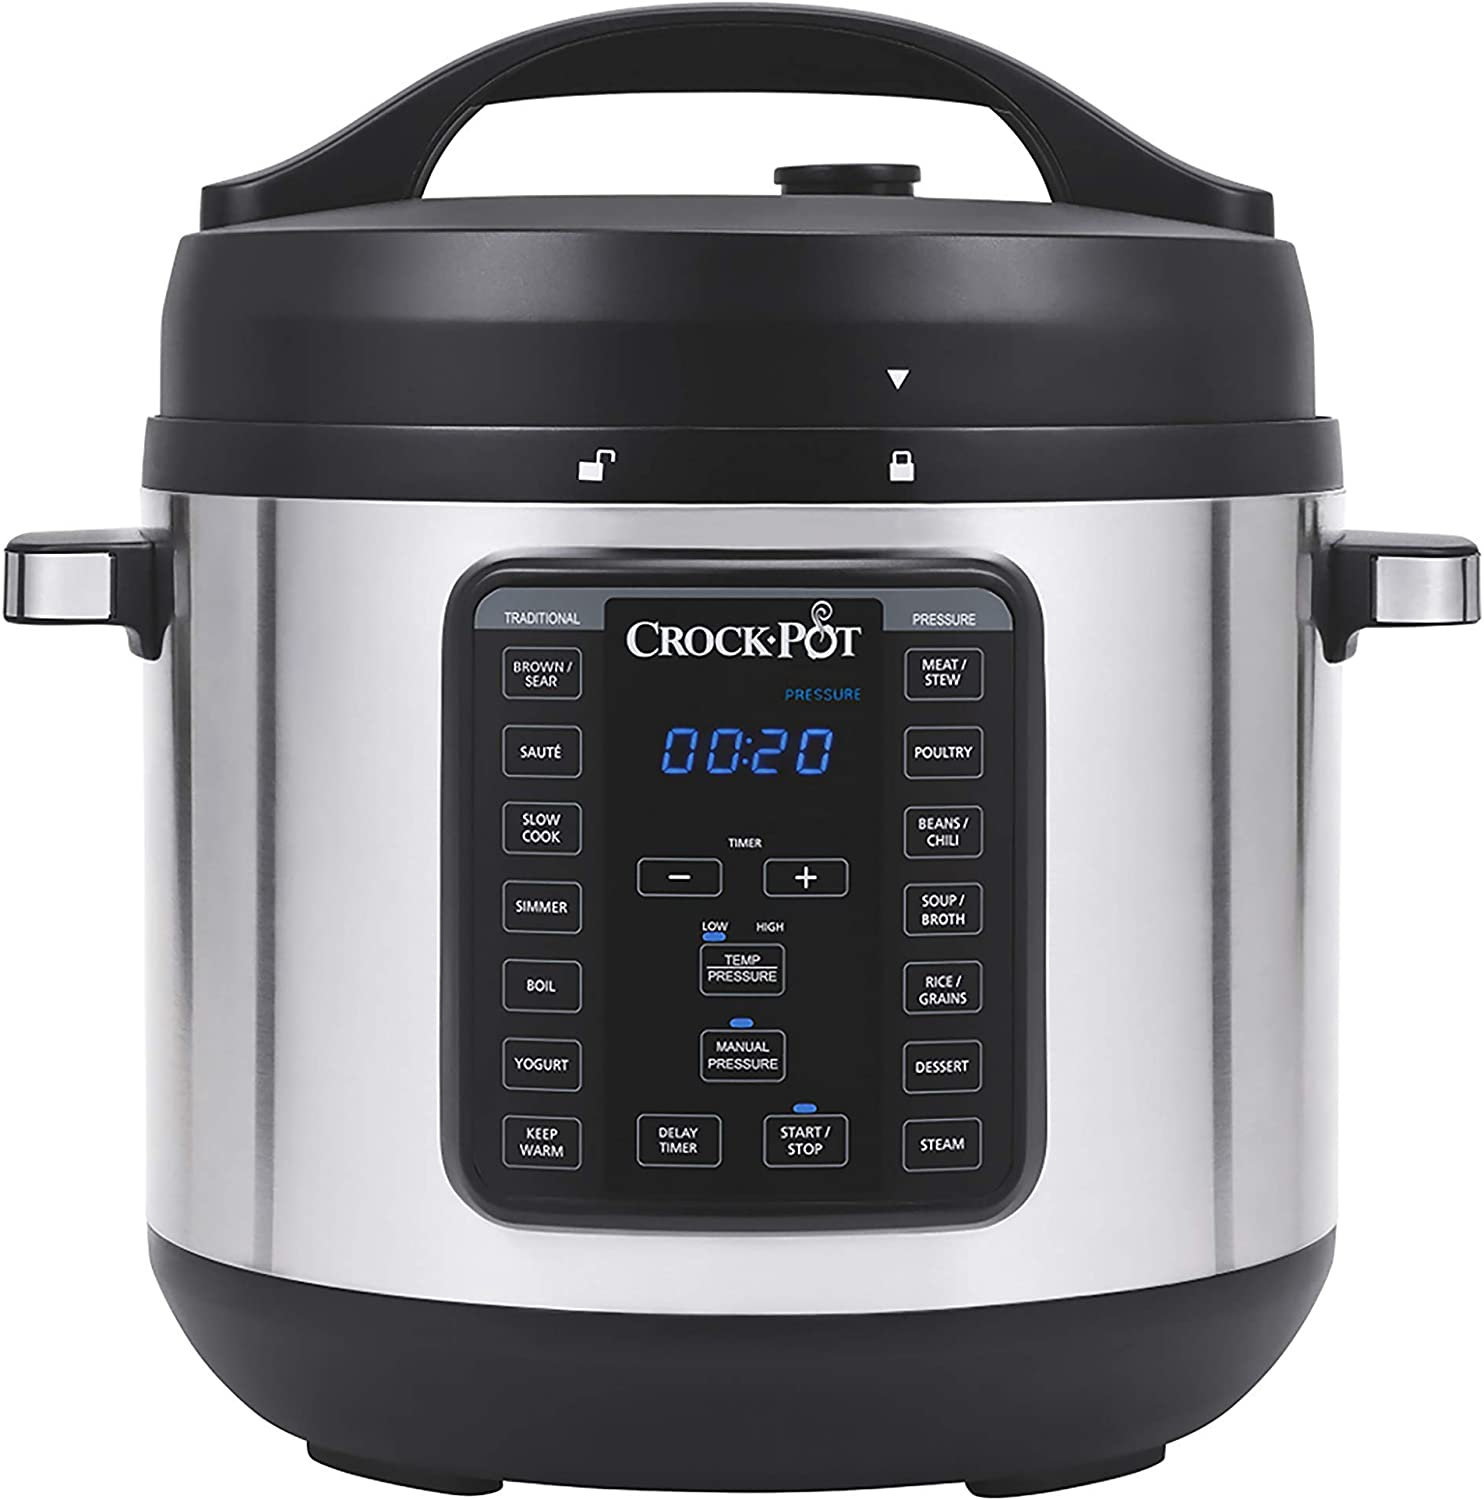 Crock-Pot 8-Quart Multi-Use XL Express Crock Programmable Slow Cooker and Pressure Cooker with Manual Pressure, Boil & Simmer, Stainless Steel | ⭐️ Exclusive